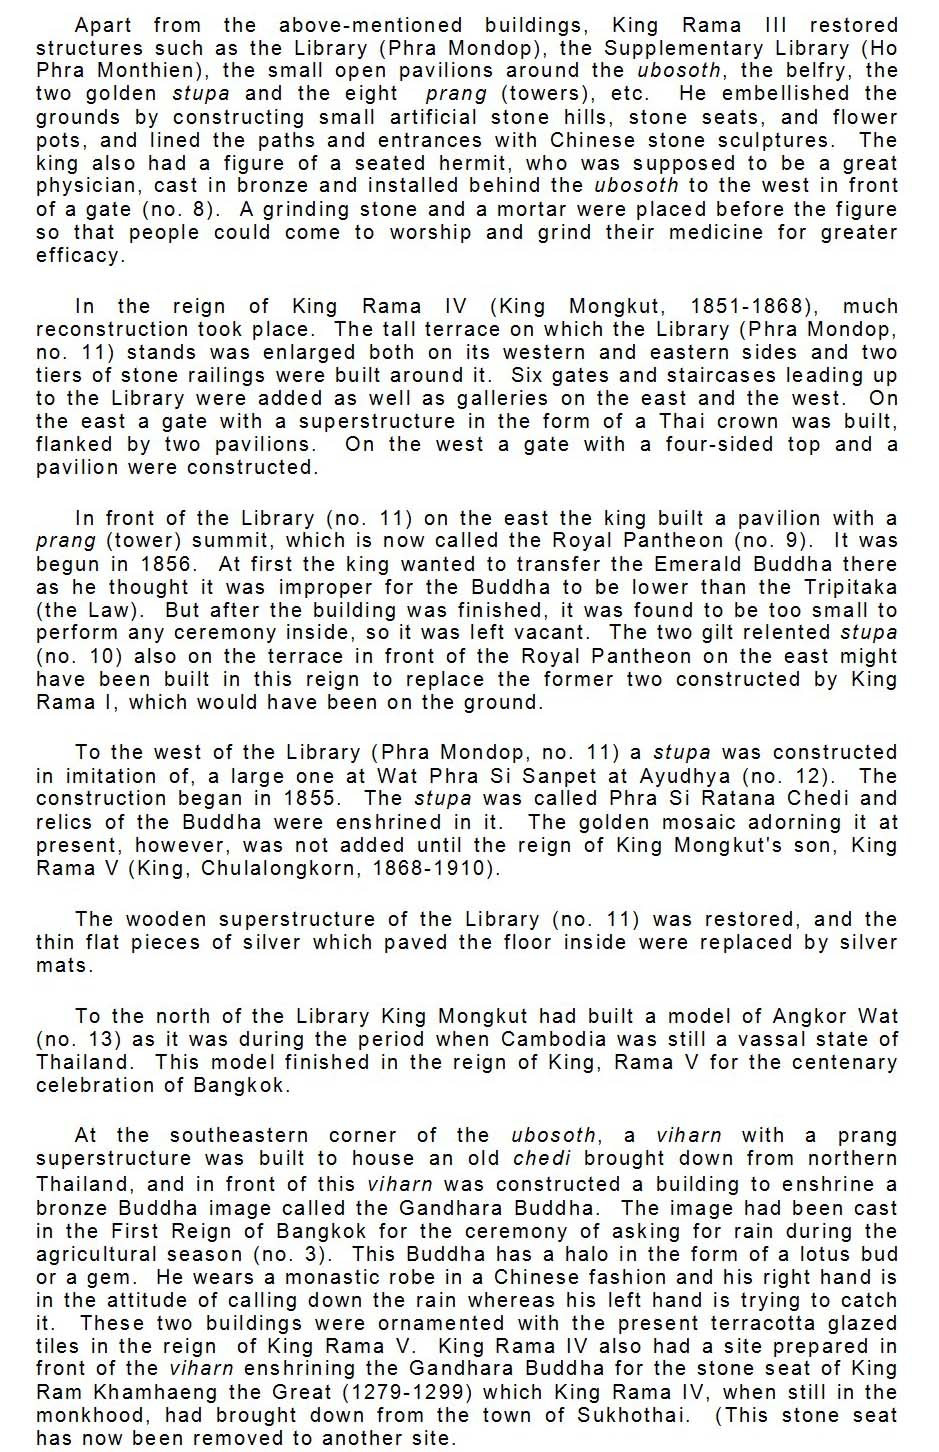 History of the Emerald Buddha page 7